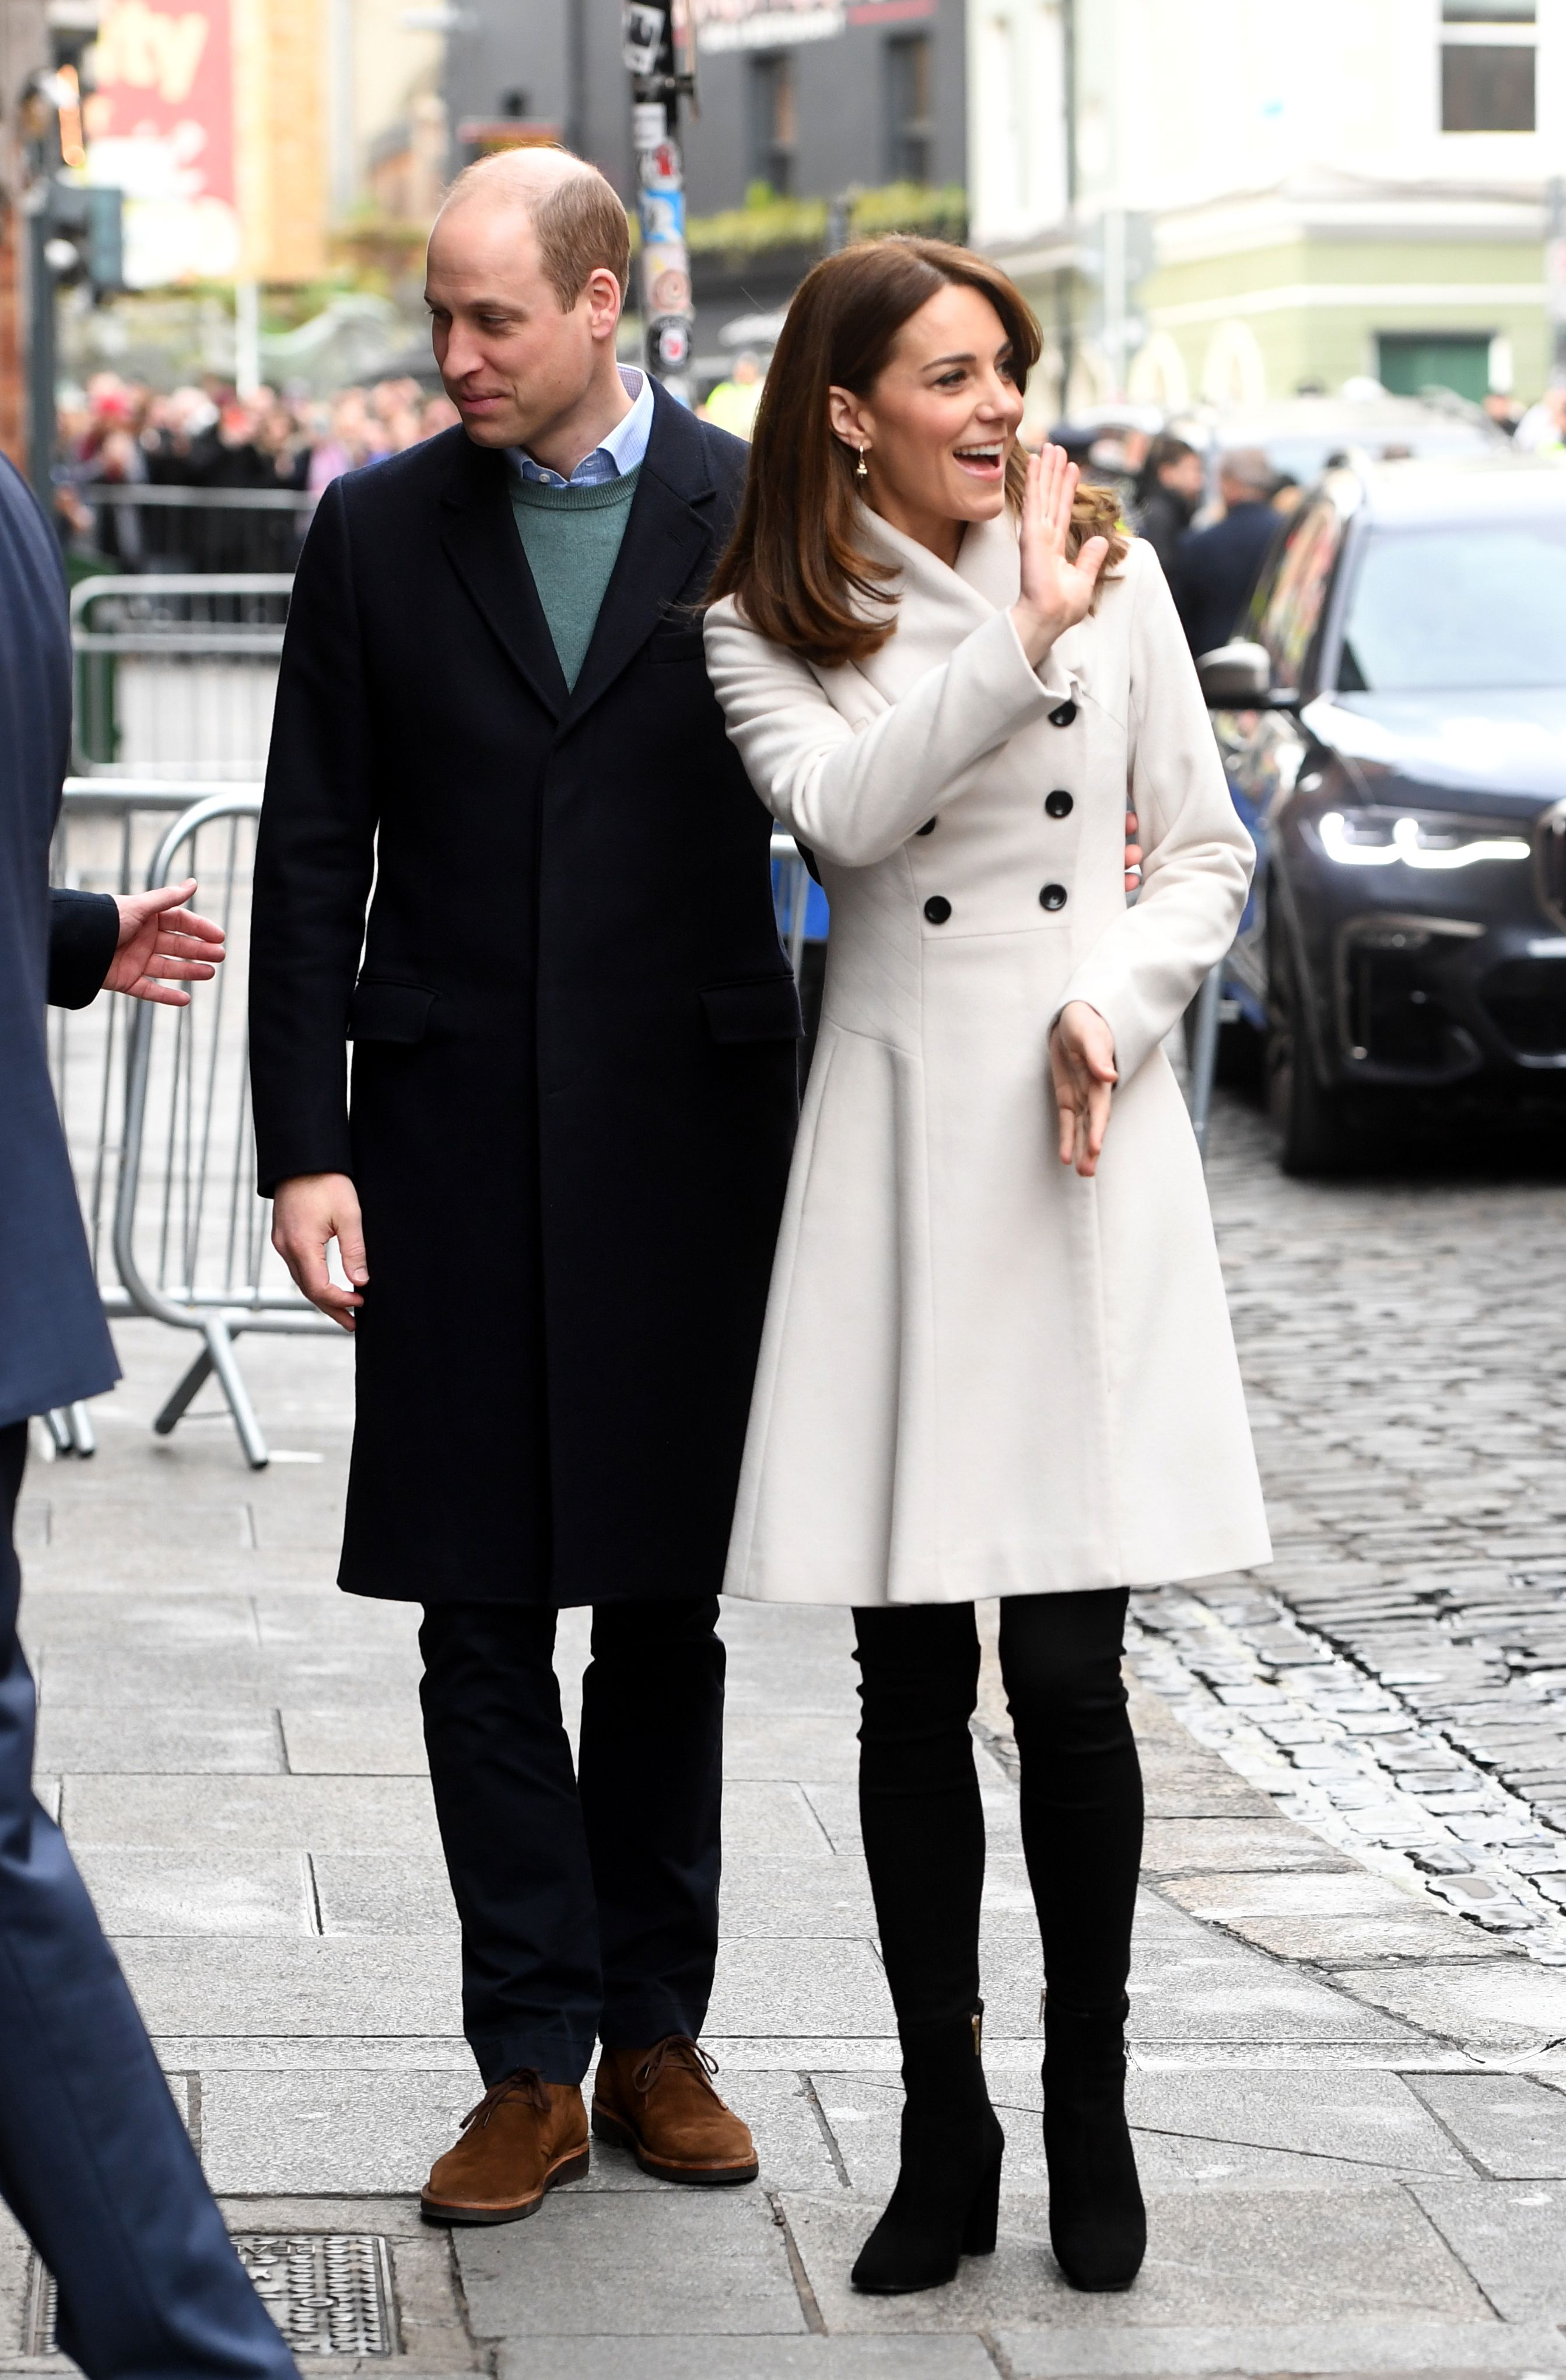 Prince William and Duchess Kate visit Jigsaw, the National Centre for Youth Mental Health on March 04, 2020, in Dublin, Ireland | Photo: Facundo Arrizabalaga/Pool/Samir Hussein/WireImage/Getty Images